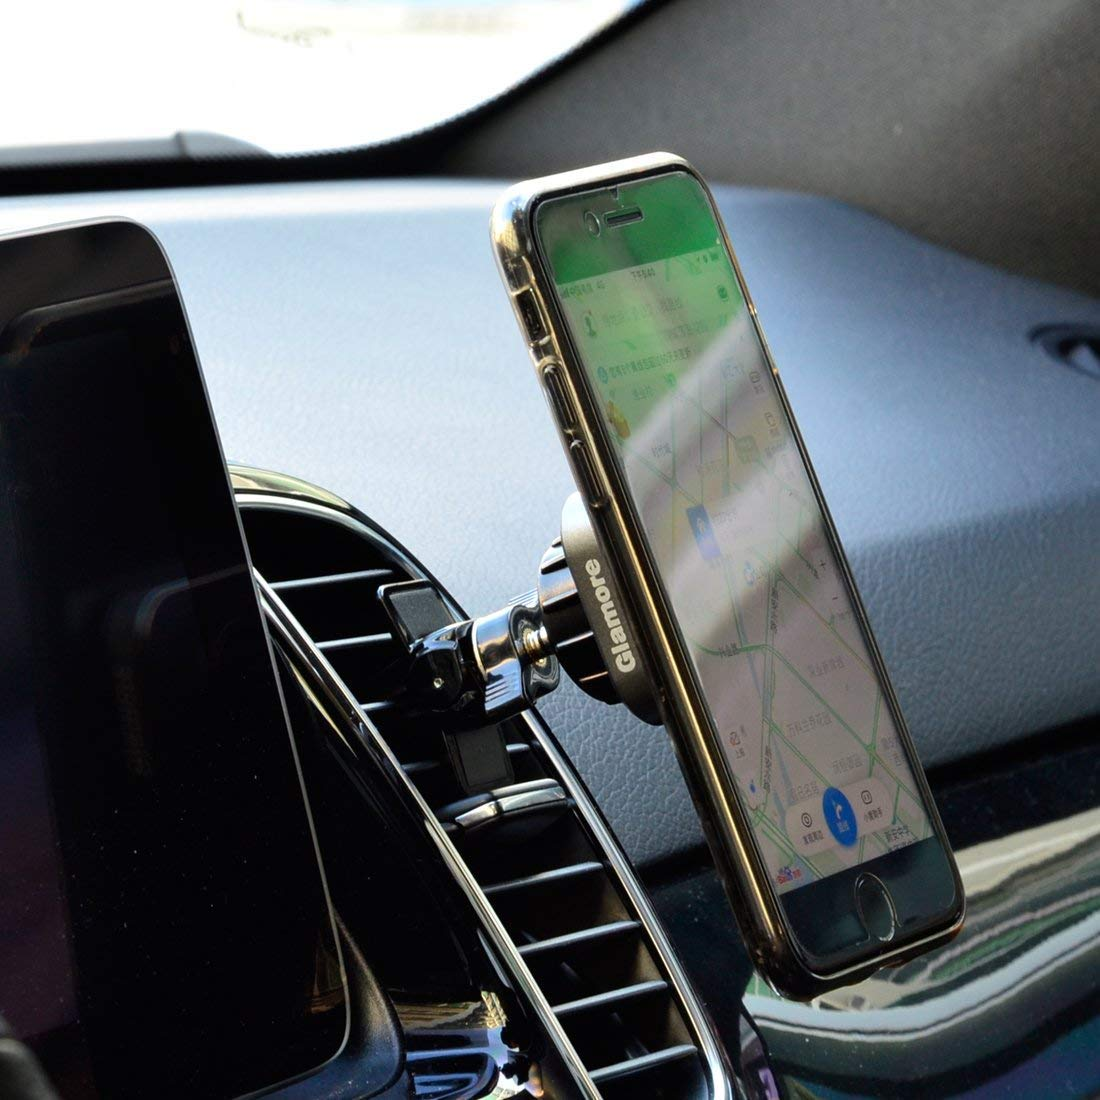 Glamore Magnetic Car Mount 360°Rotation Air Vent Car Phone Holder for iPhone X 8 Plus 7 6s SE Samsung Galaxy S5/S6/S7/S8 & other Smartphone